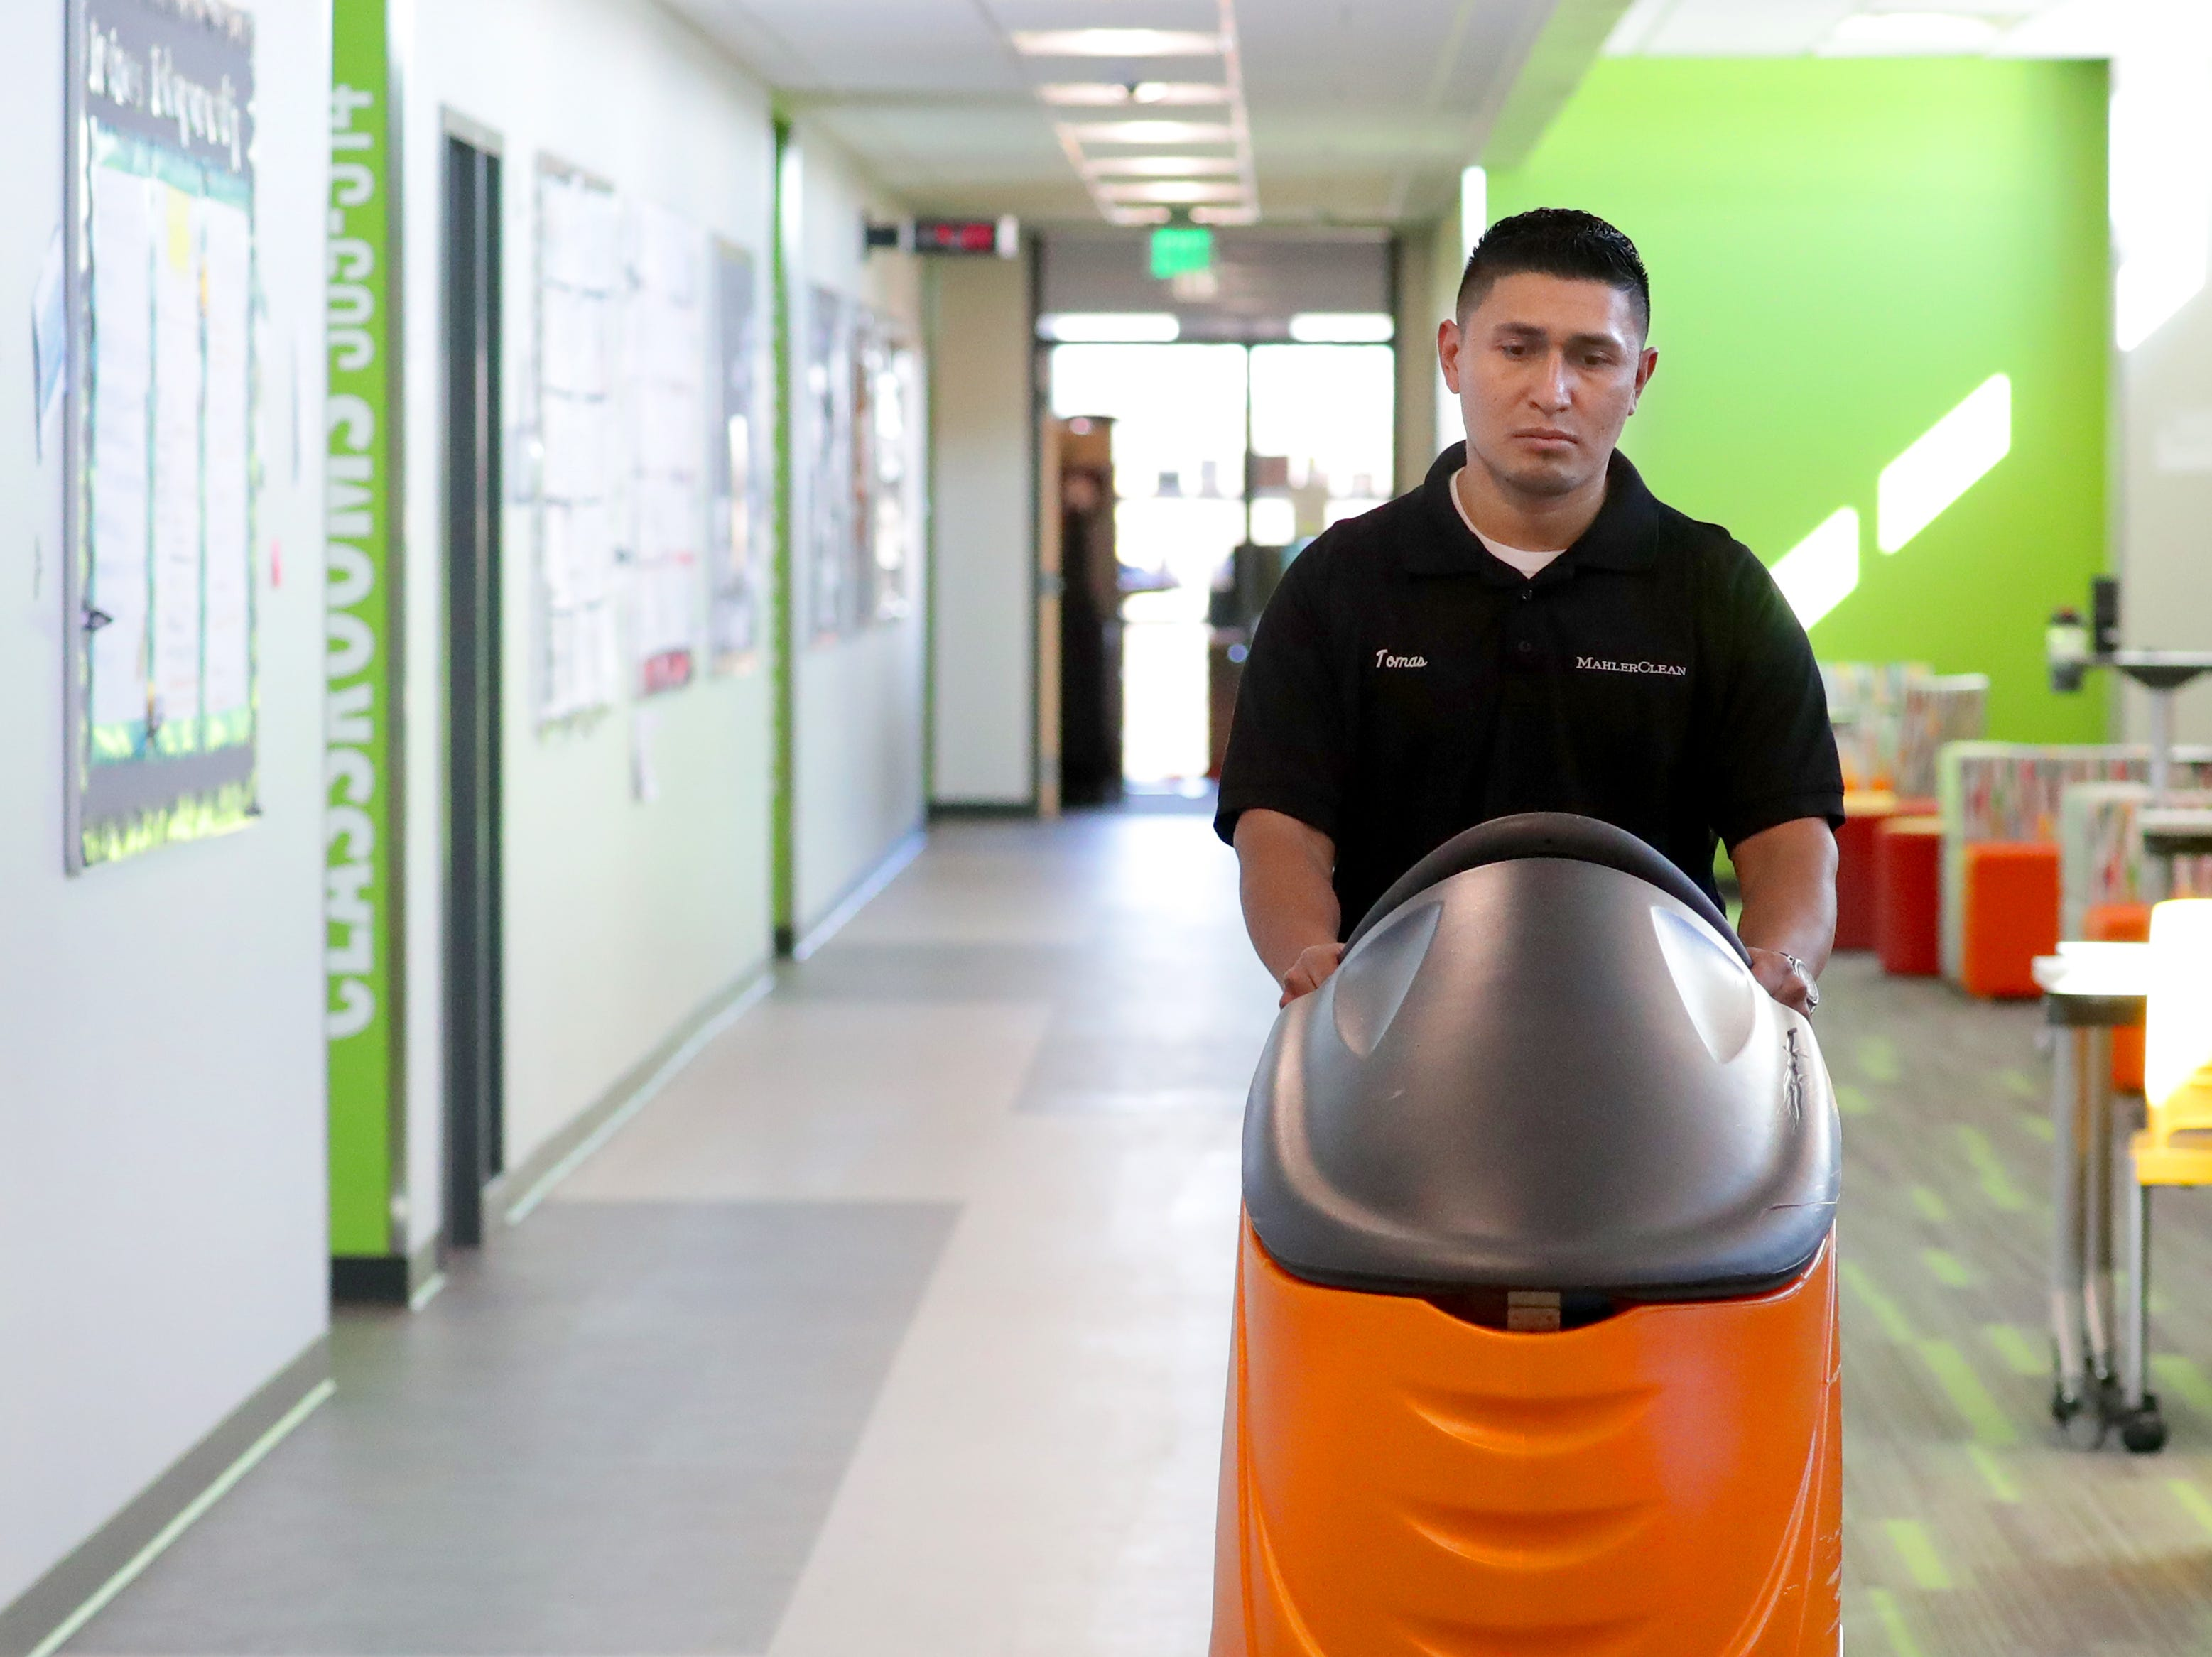 MahlerClean floor crew manager Tomas Perez cleans the floor at St. Augustine Academy on South Fifth Street in Milwaukee.